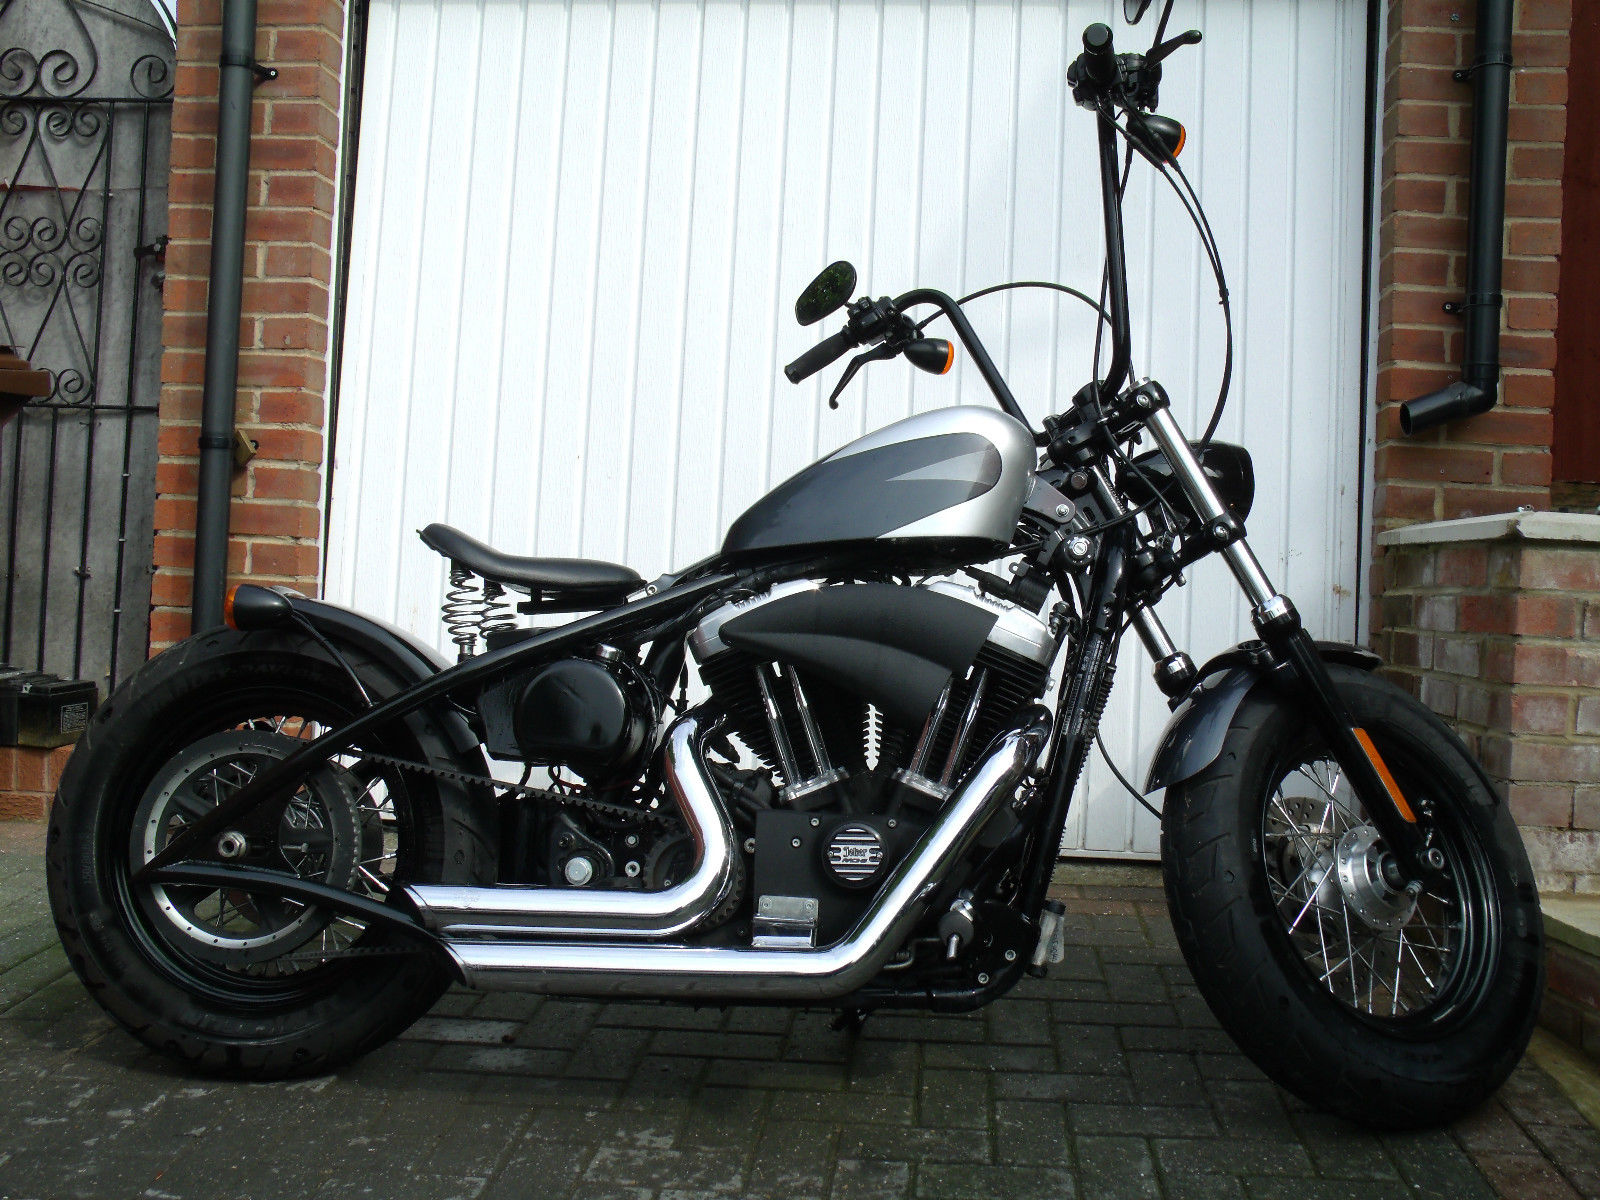 Harley Davidson Xl 1200 X Forty Eight Bobber Chopper Sportster 48 Softail Wiring Diagram Custom Not Victory Indian